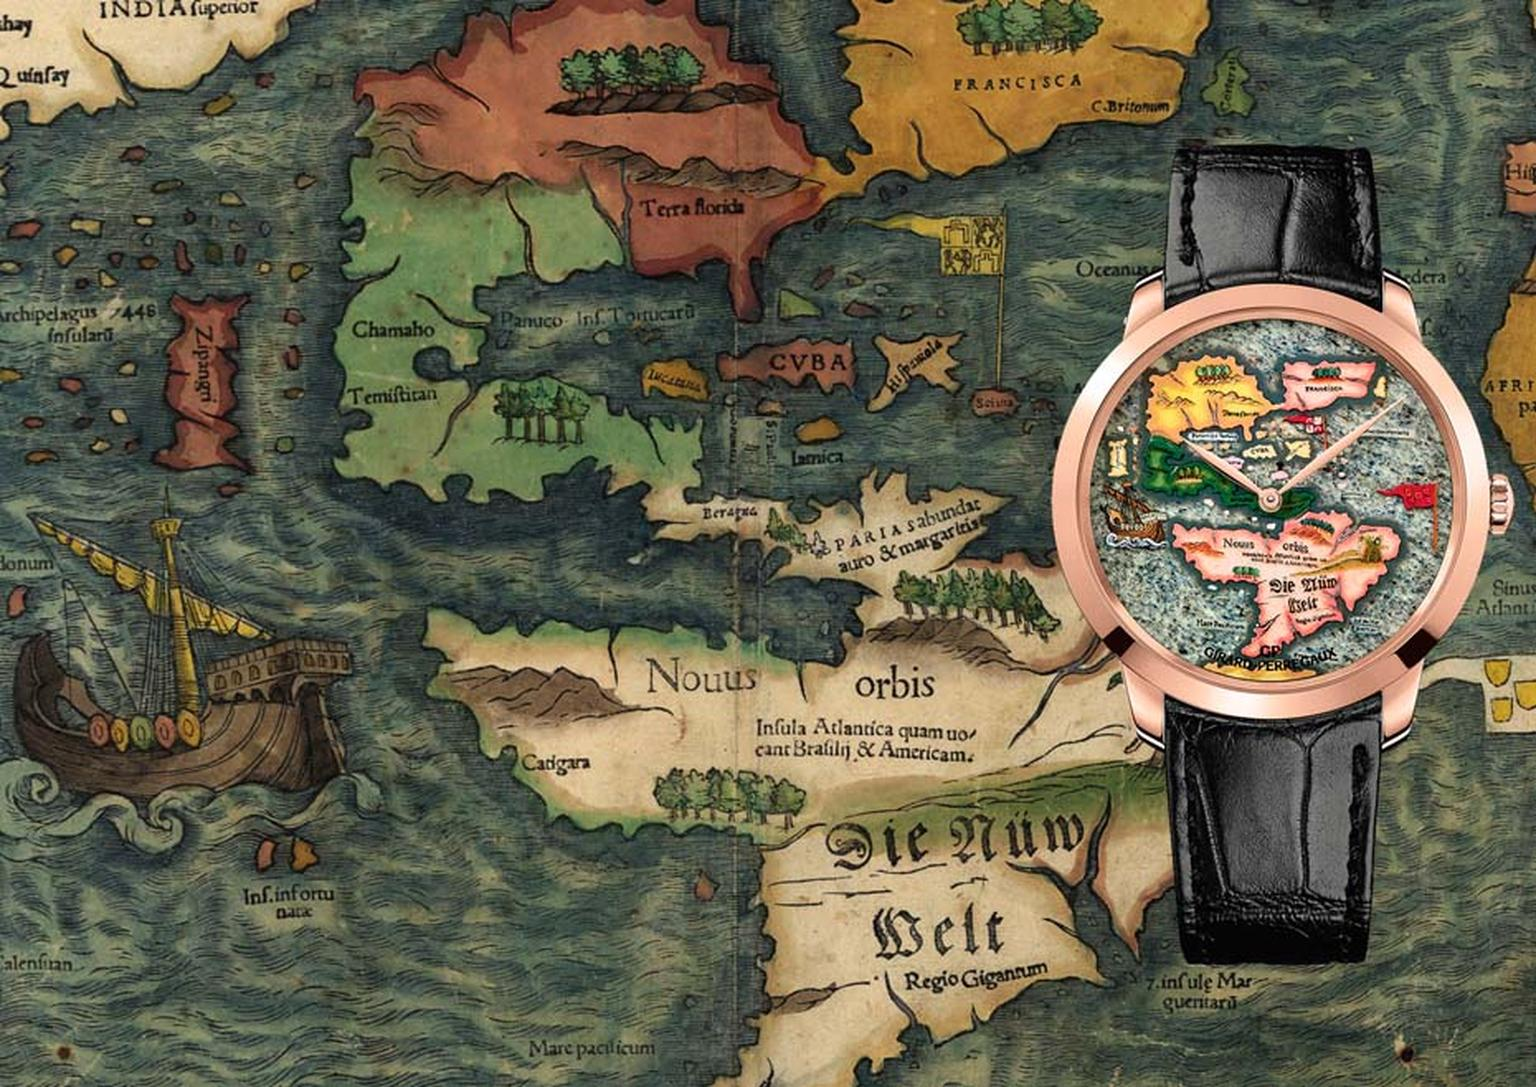 The Girard-Perregaux New World Novus Orbis watch is inspired by a map attributed to Sebastian Münster of 1554 depicting the New World. The land masses on the dial have been made with stone marquetry to create a sense of relief, complemented by miniature p